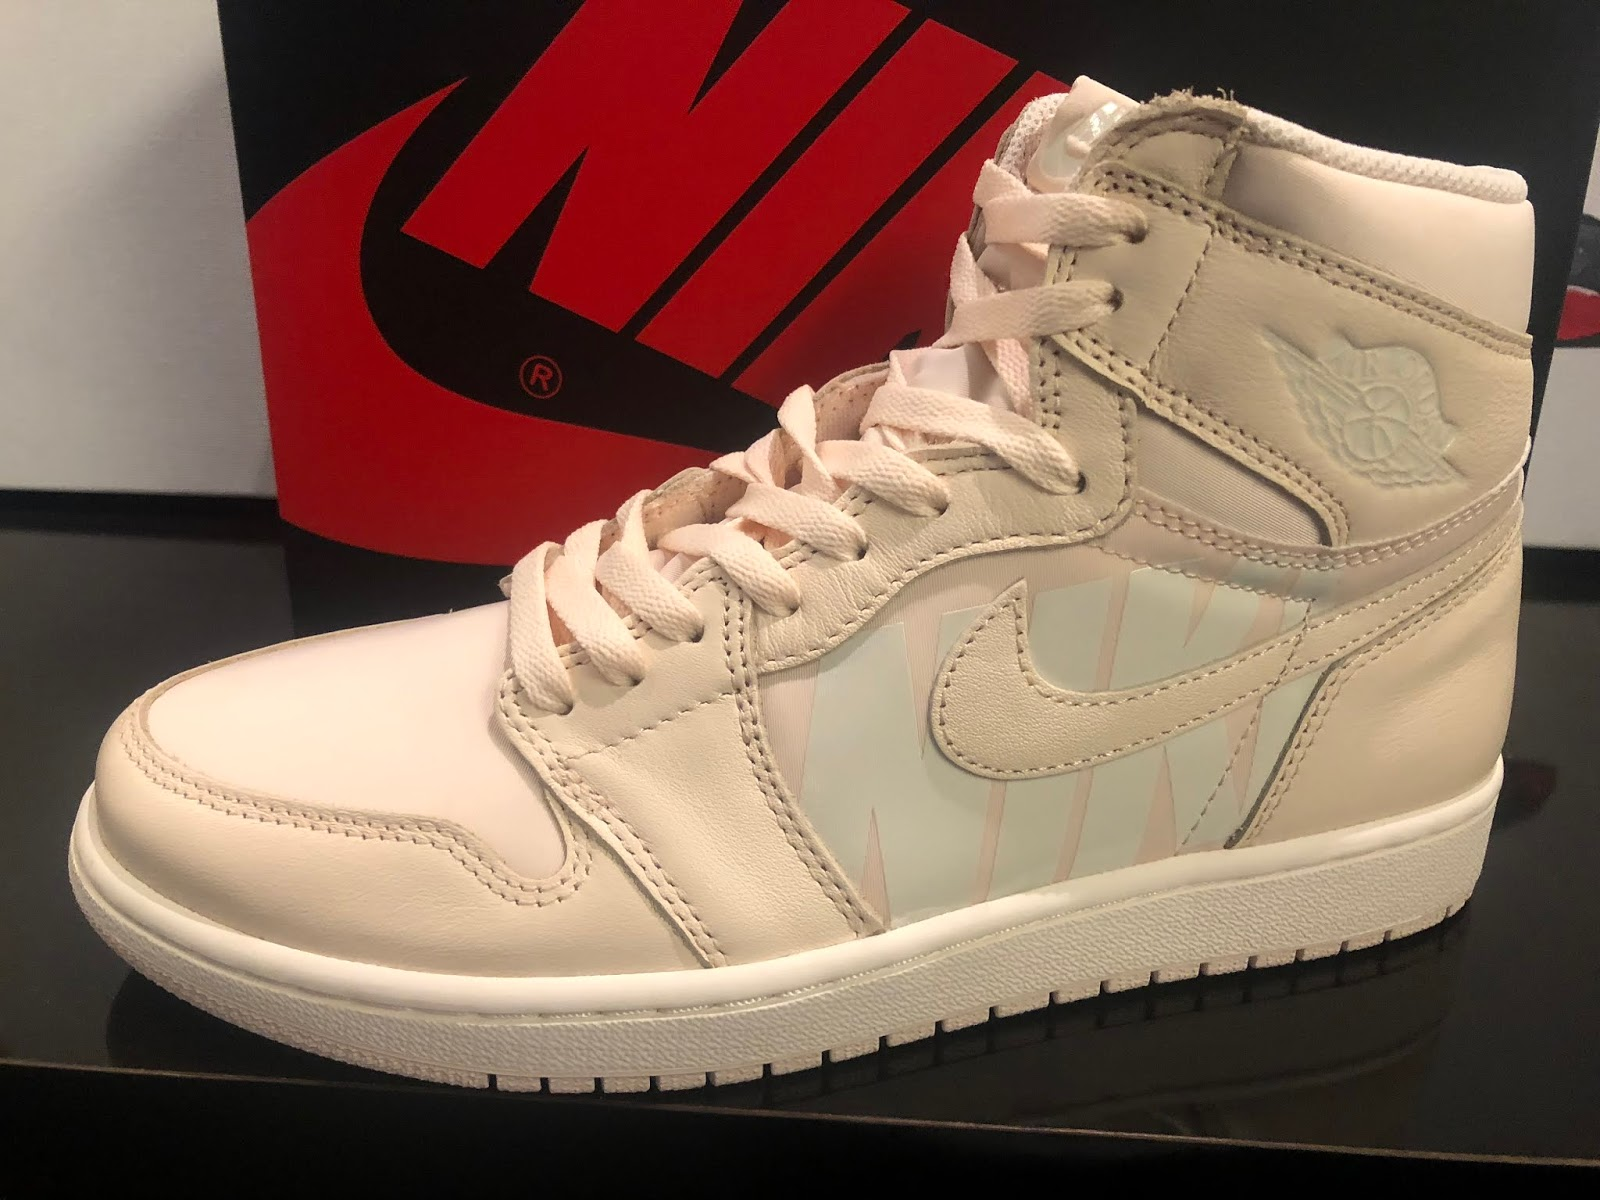 47c61a98faa4f7 Air Jordan 1 Logo Pack  guava ice  drops this saturday 9 1. First come  first served.  160 plus tax sizes 9-13